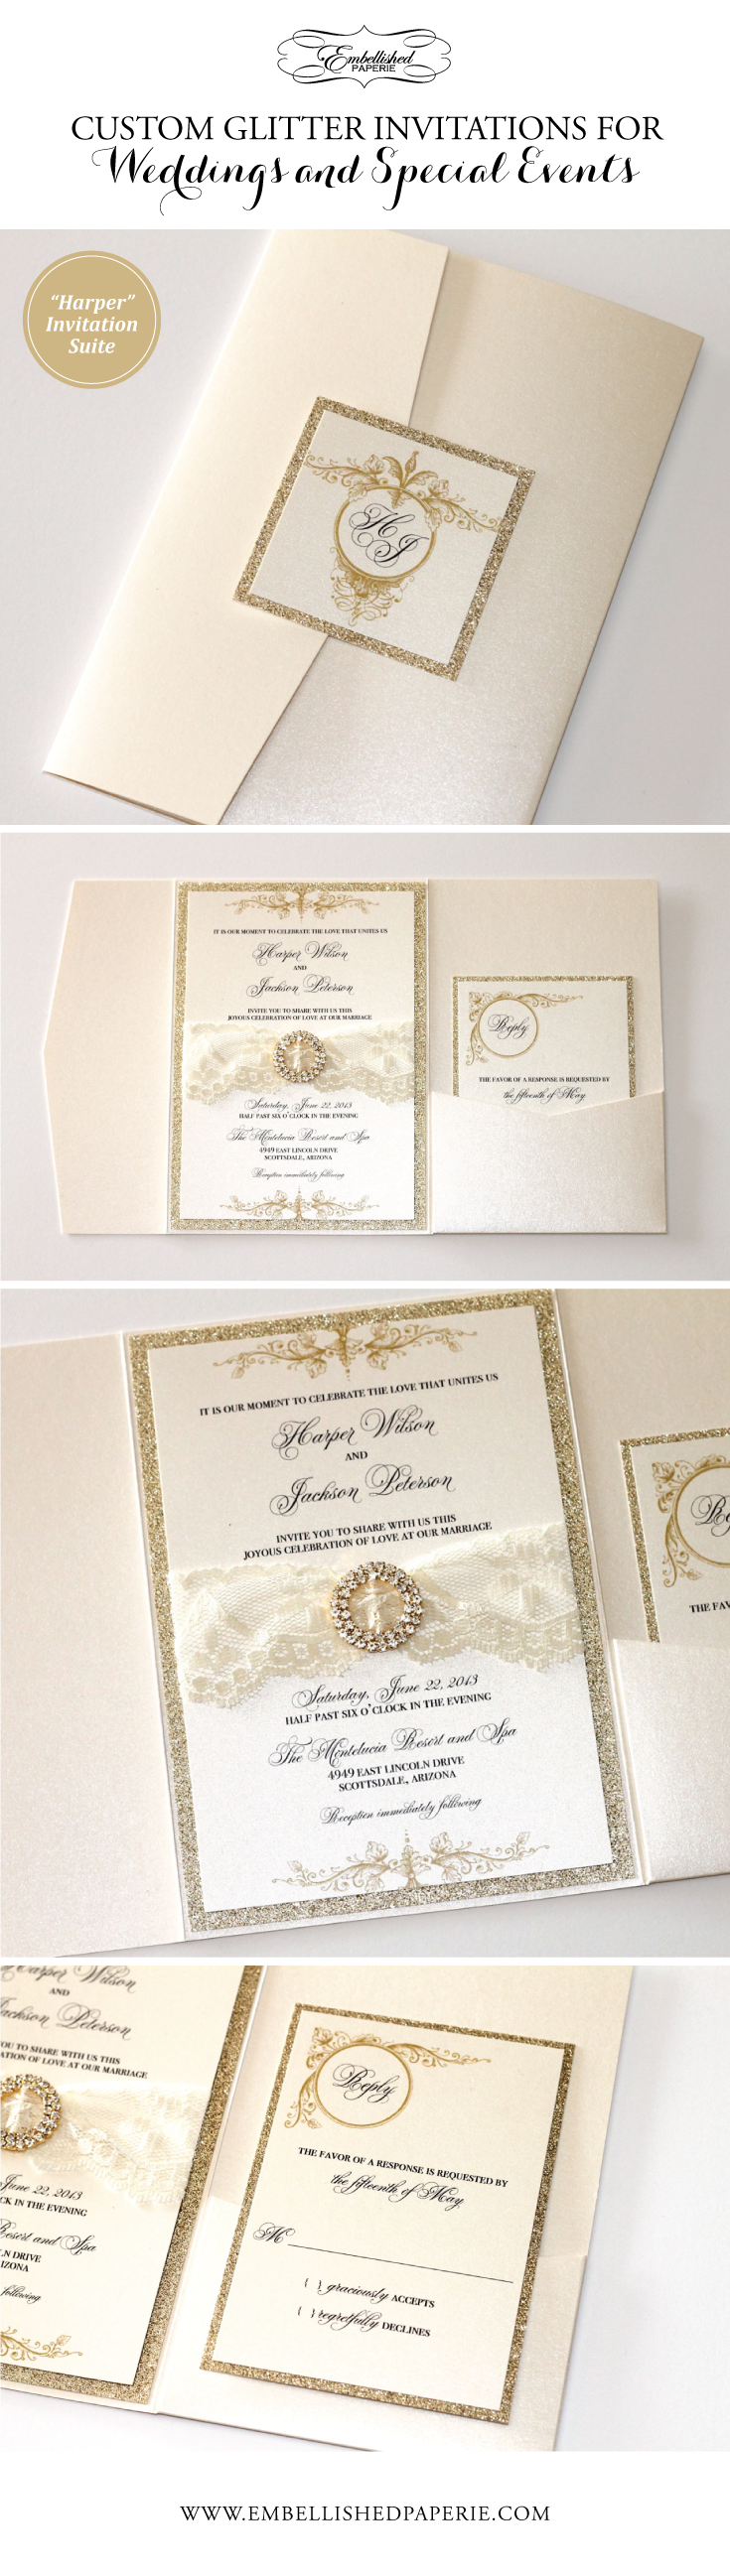 Glitter Wedding Invitation Lace Wedding Invitation Vintage Wedding